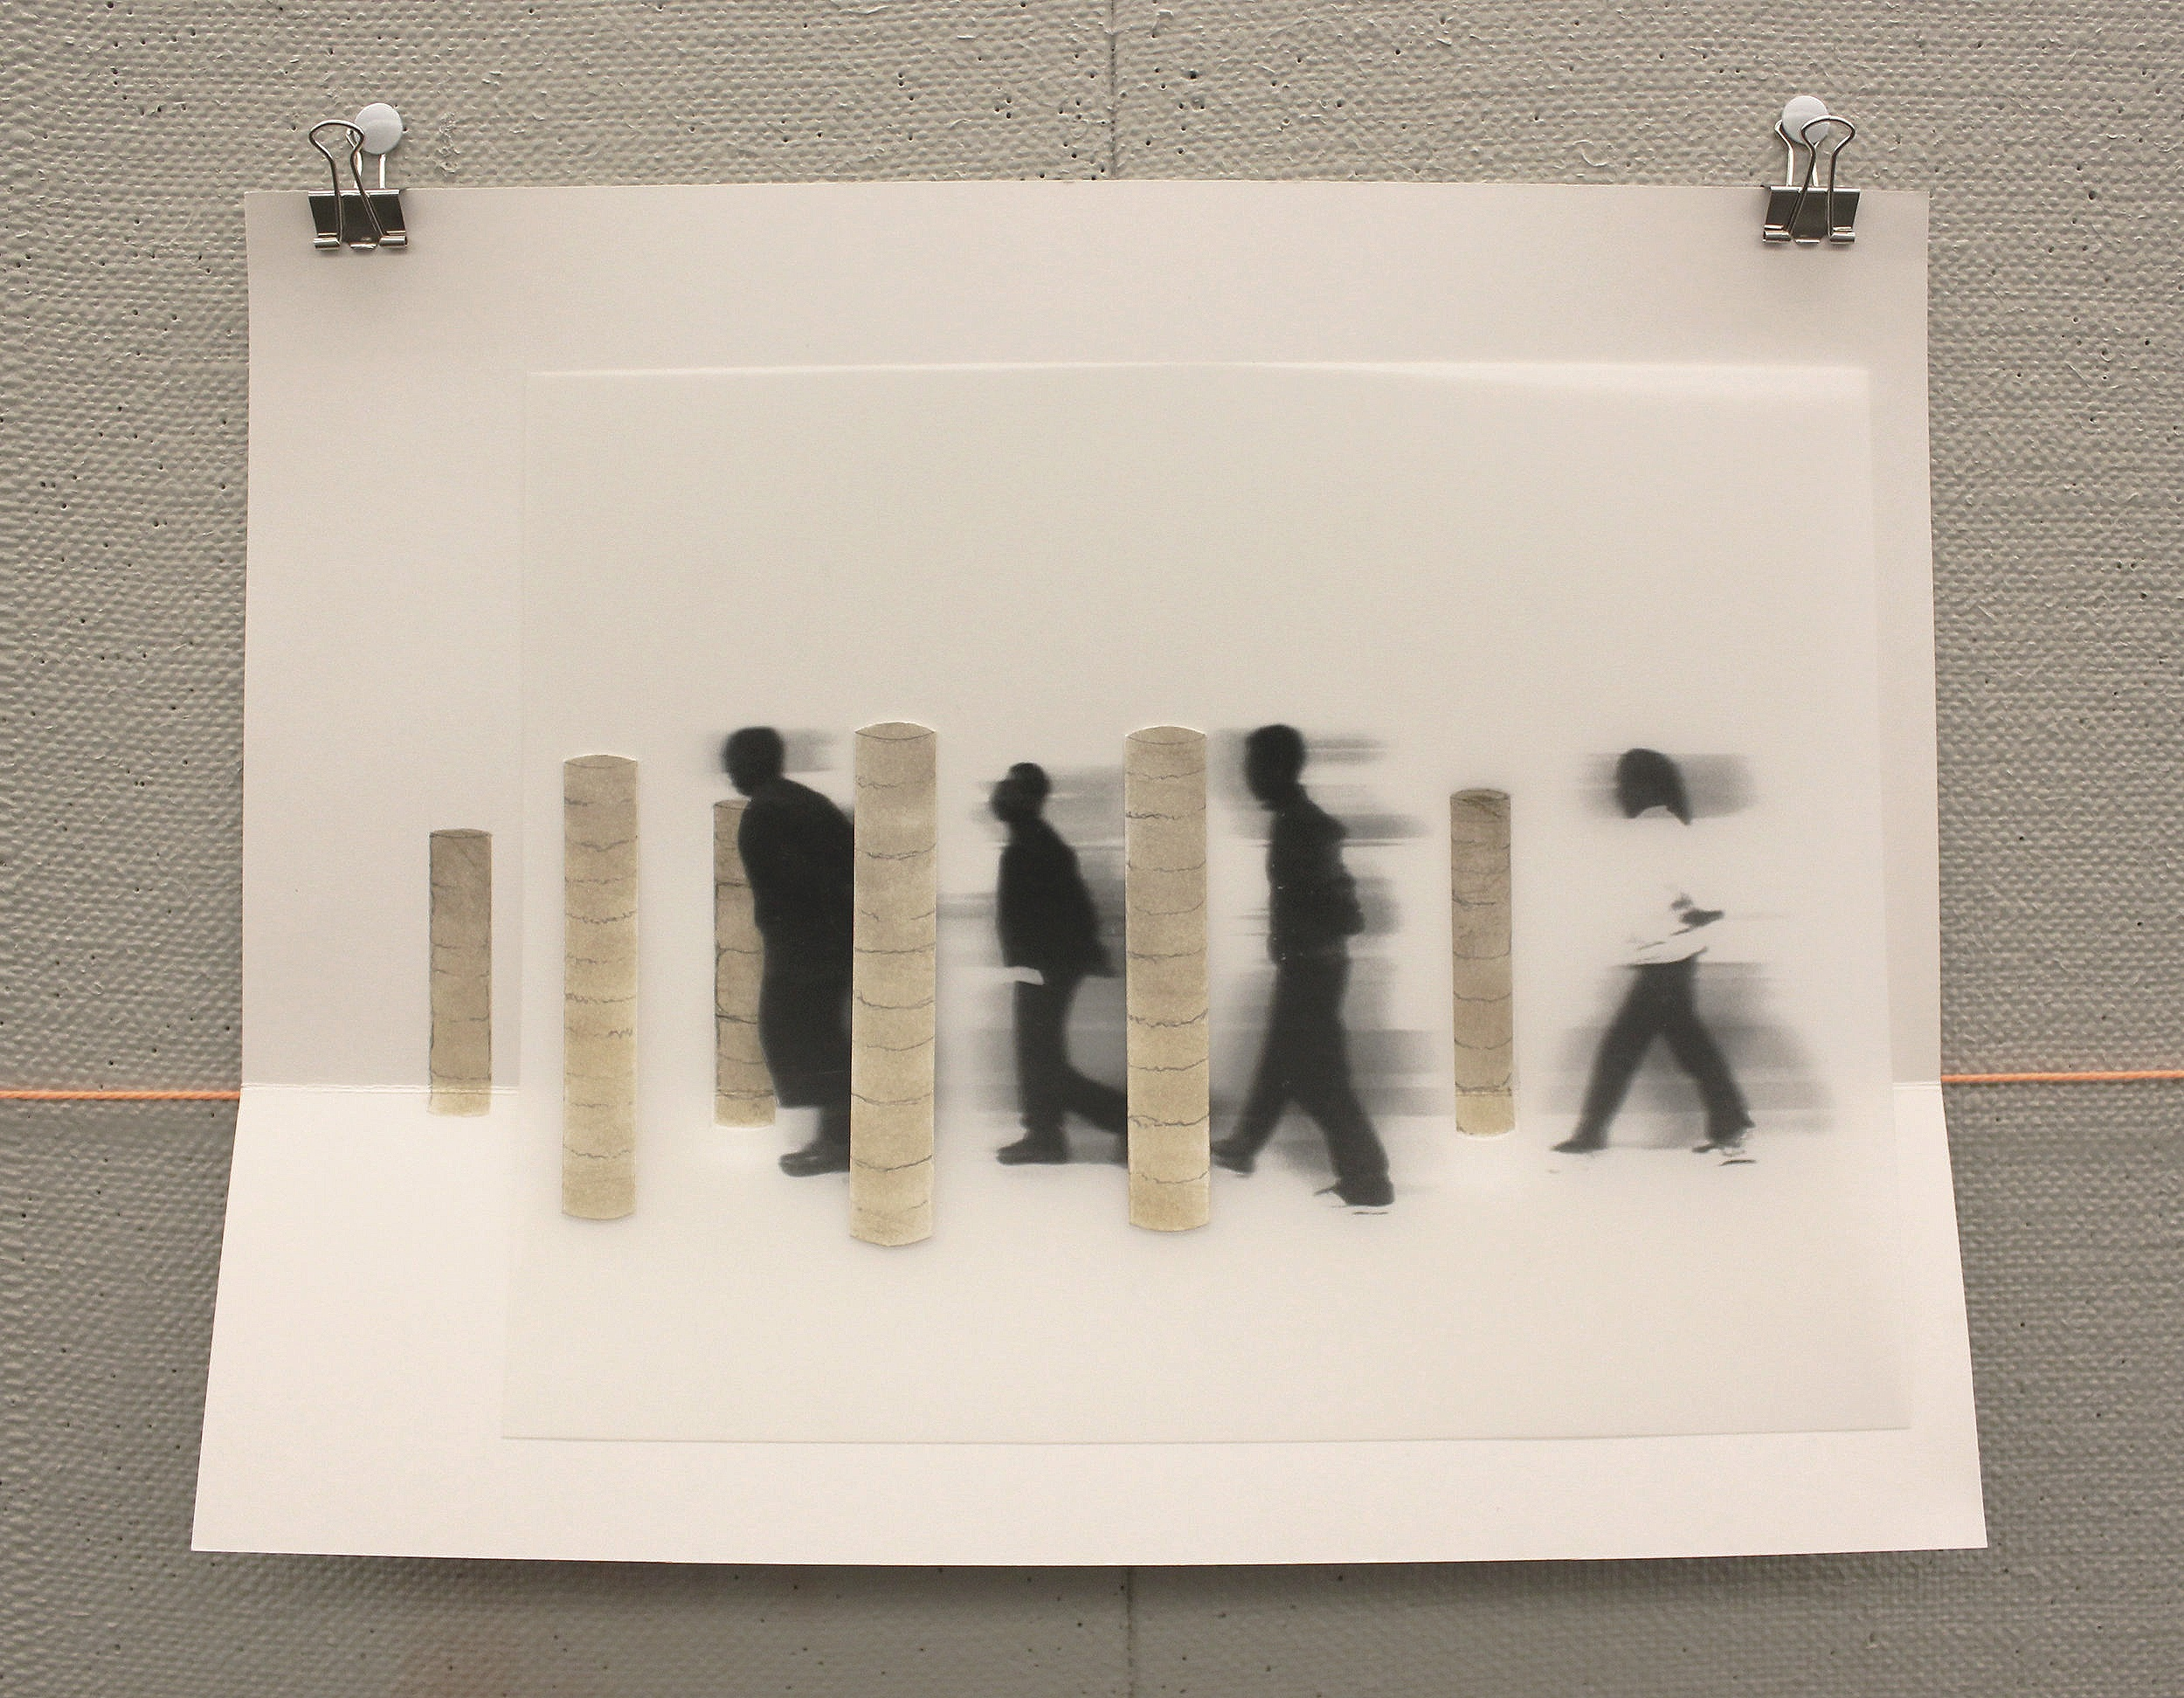 Xerox print on mylar, soil on paper. A gallery showing of site markers sets up the walking tour.